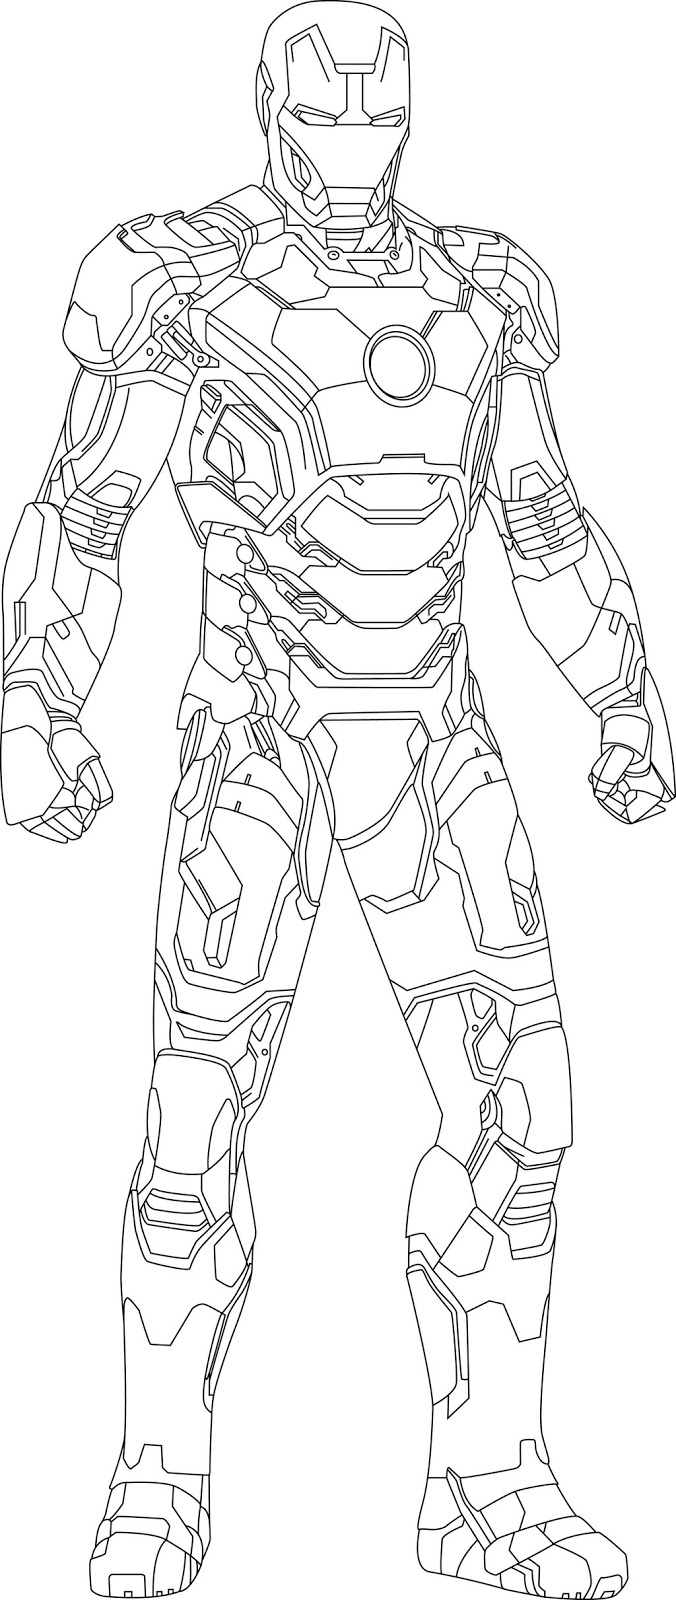 kids avengers coloring pages avengers printable coloring page simple coloring pages pages kids avengers coloring